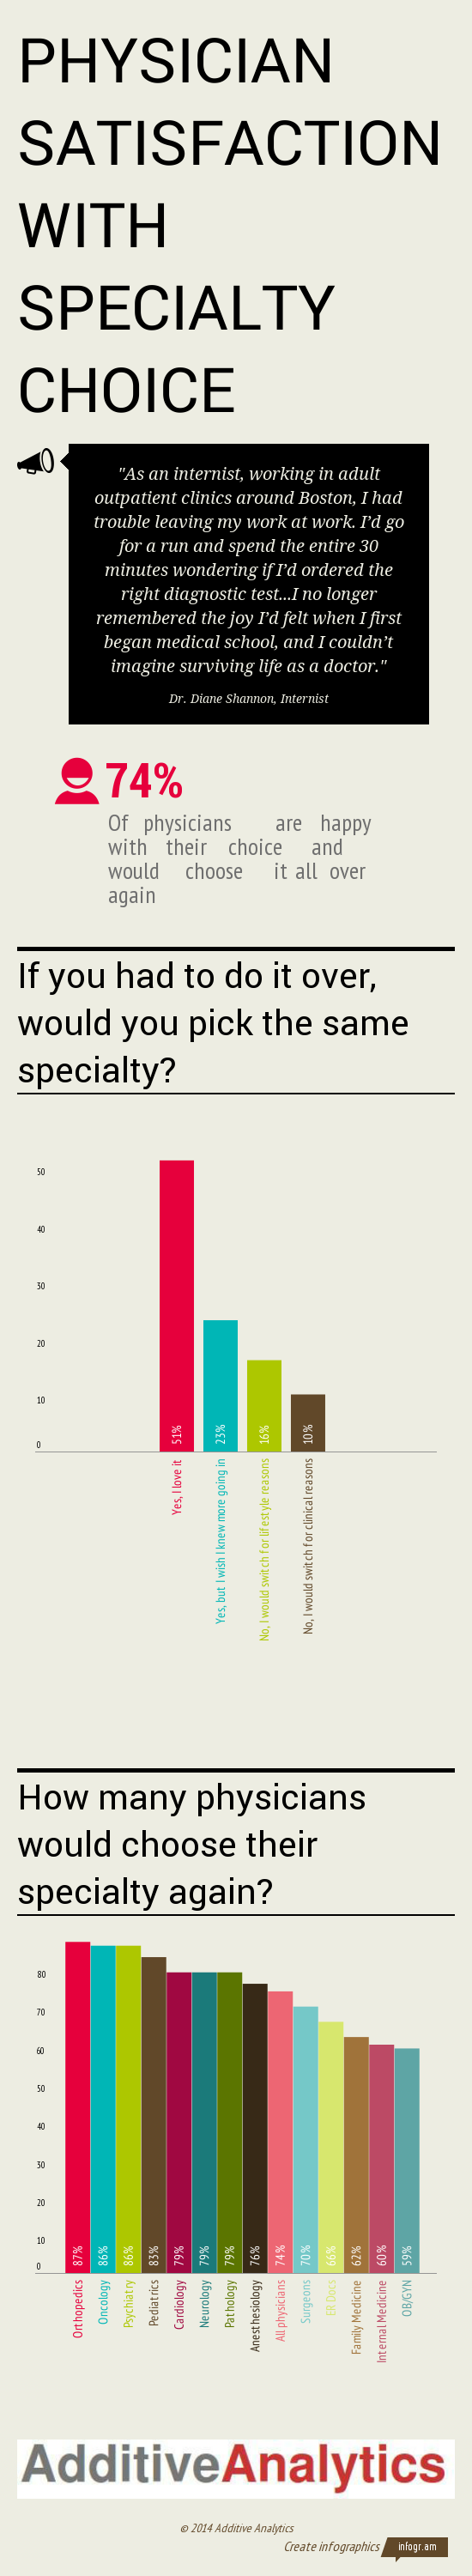 Physician Satisfaction With Specialty Choice | Visual ly